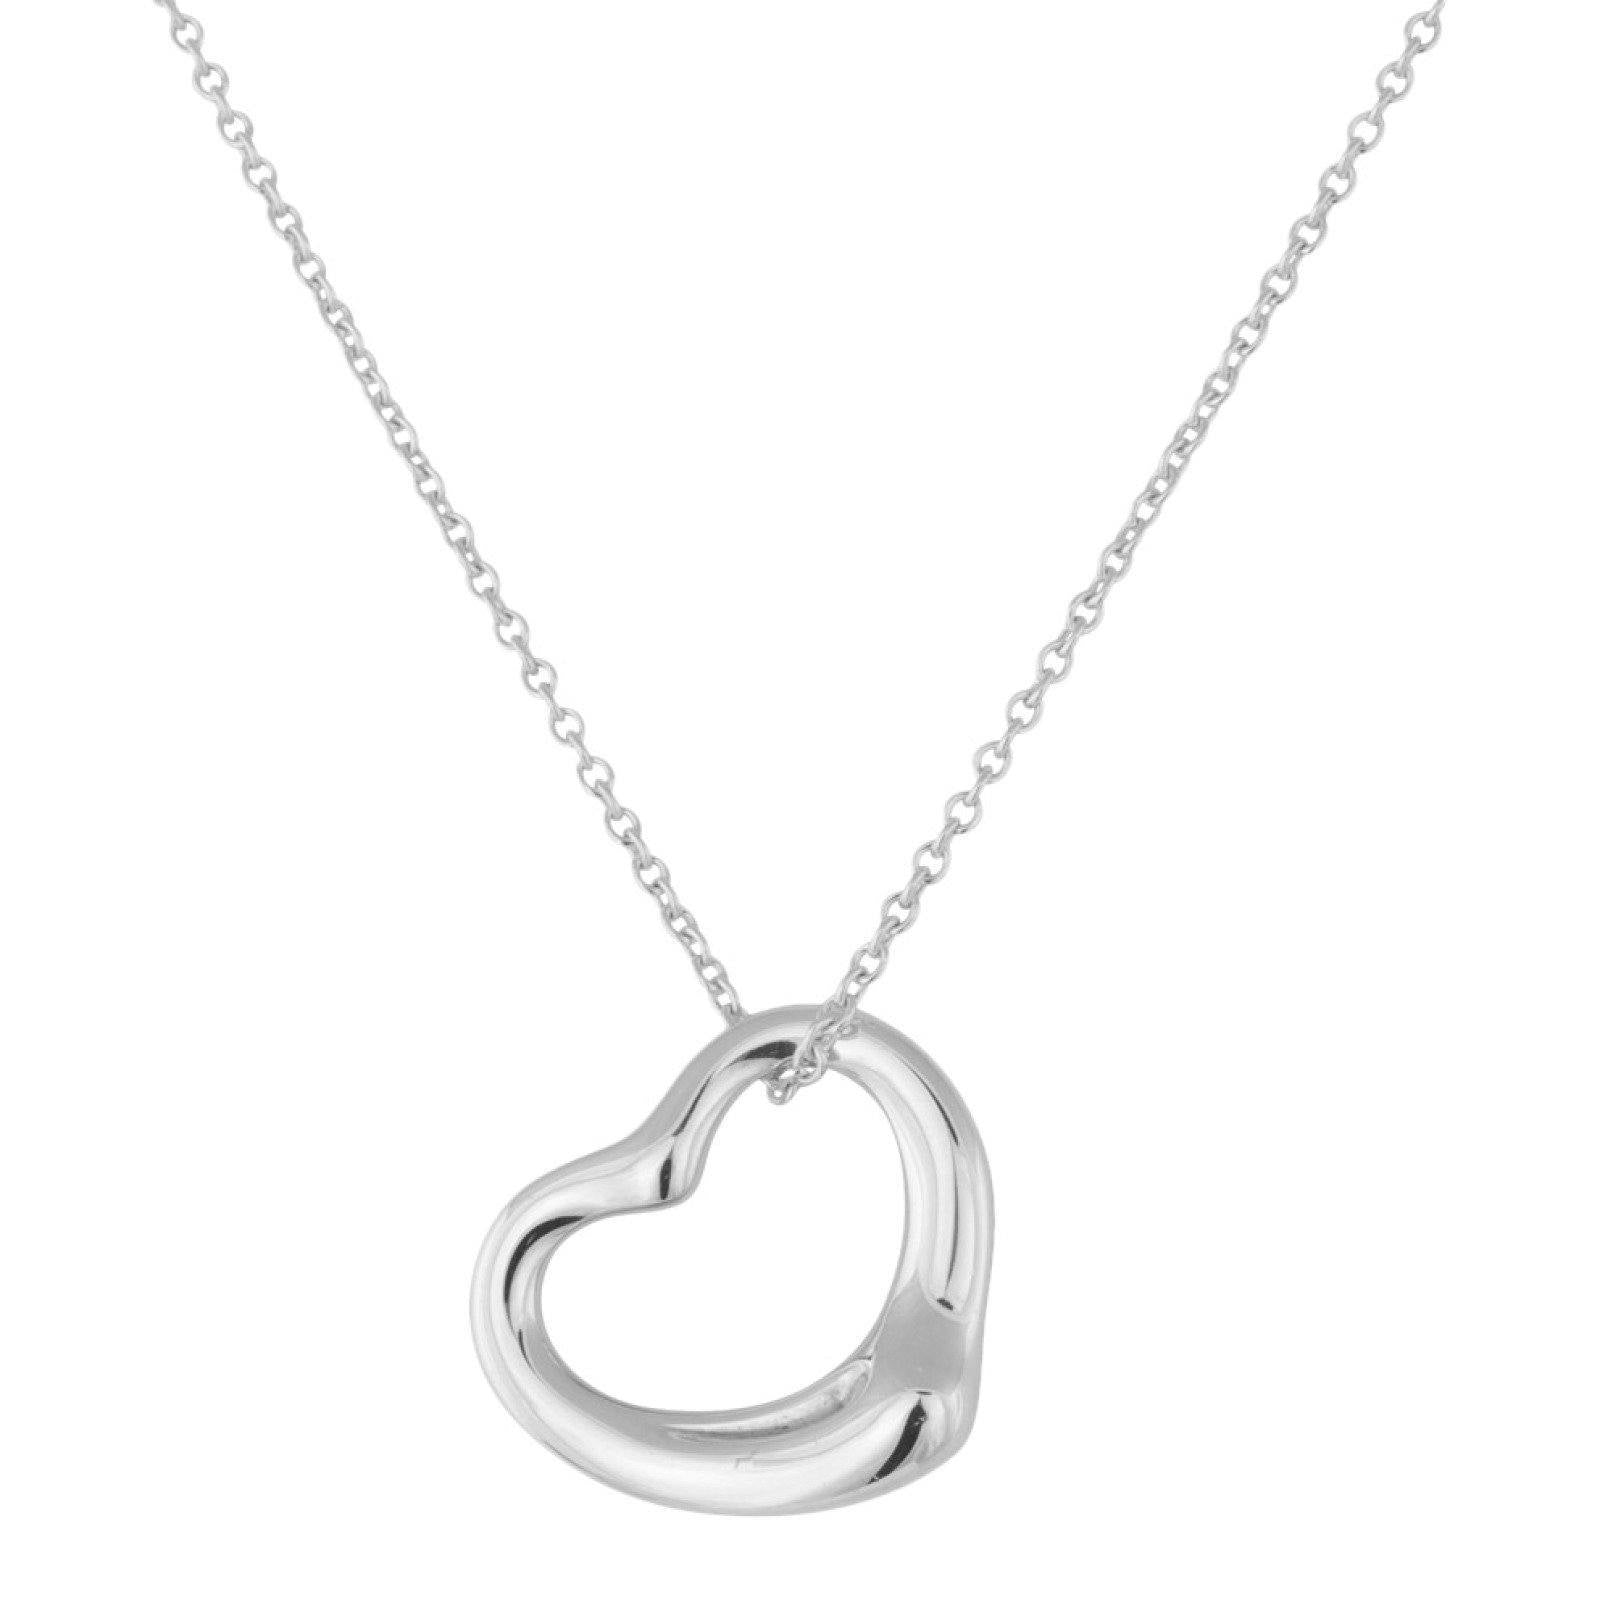 2c7bb769e88 Tiffany & Co. Elsa Peretti Open Heart Pendant on a 18